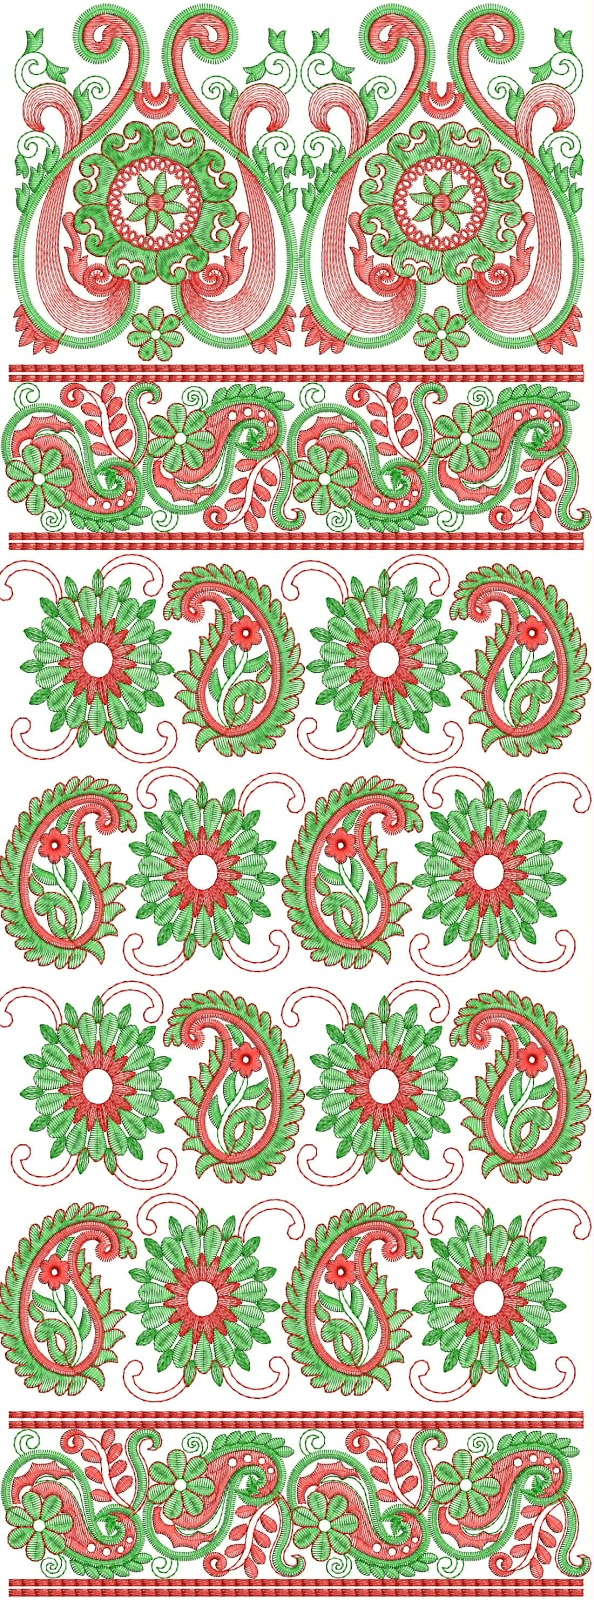 Embdesigntube south indian saree emb designs free download for Indian home plans and designs free download